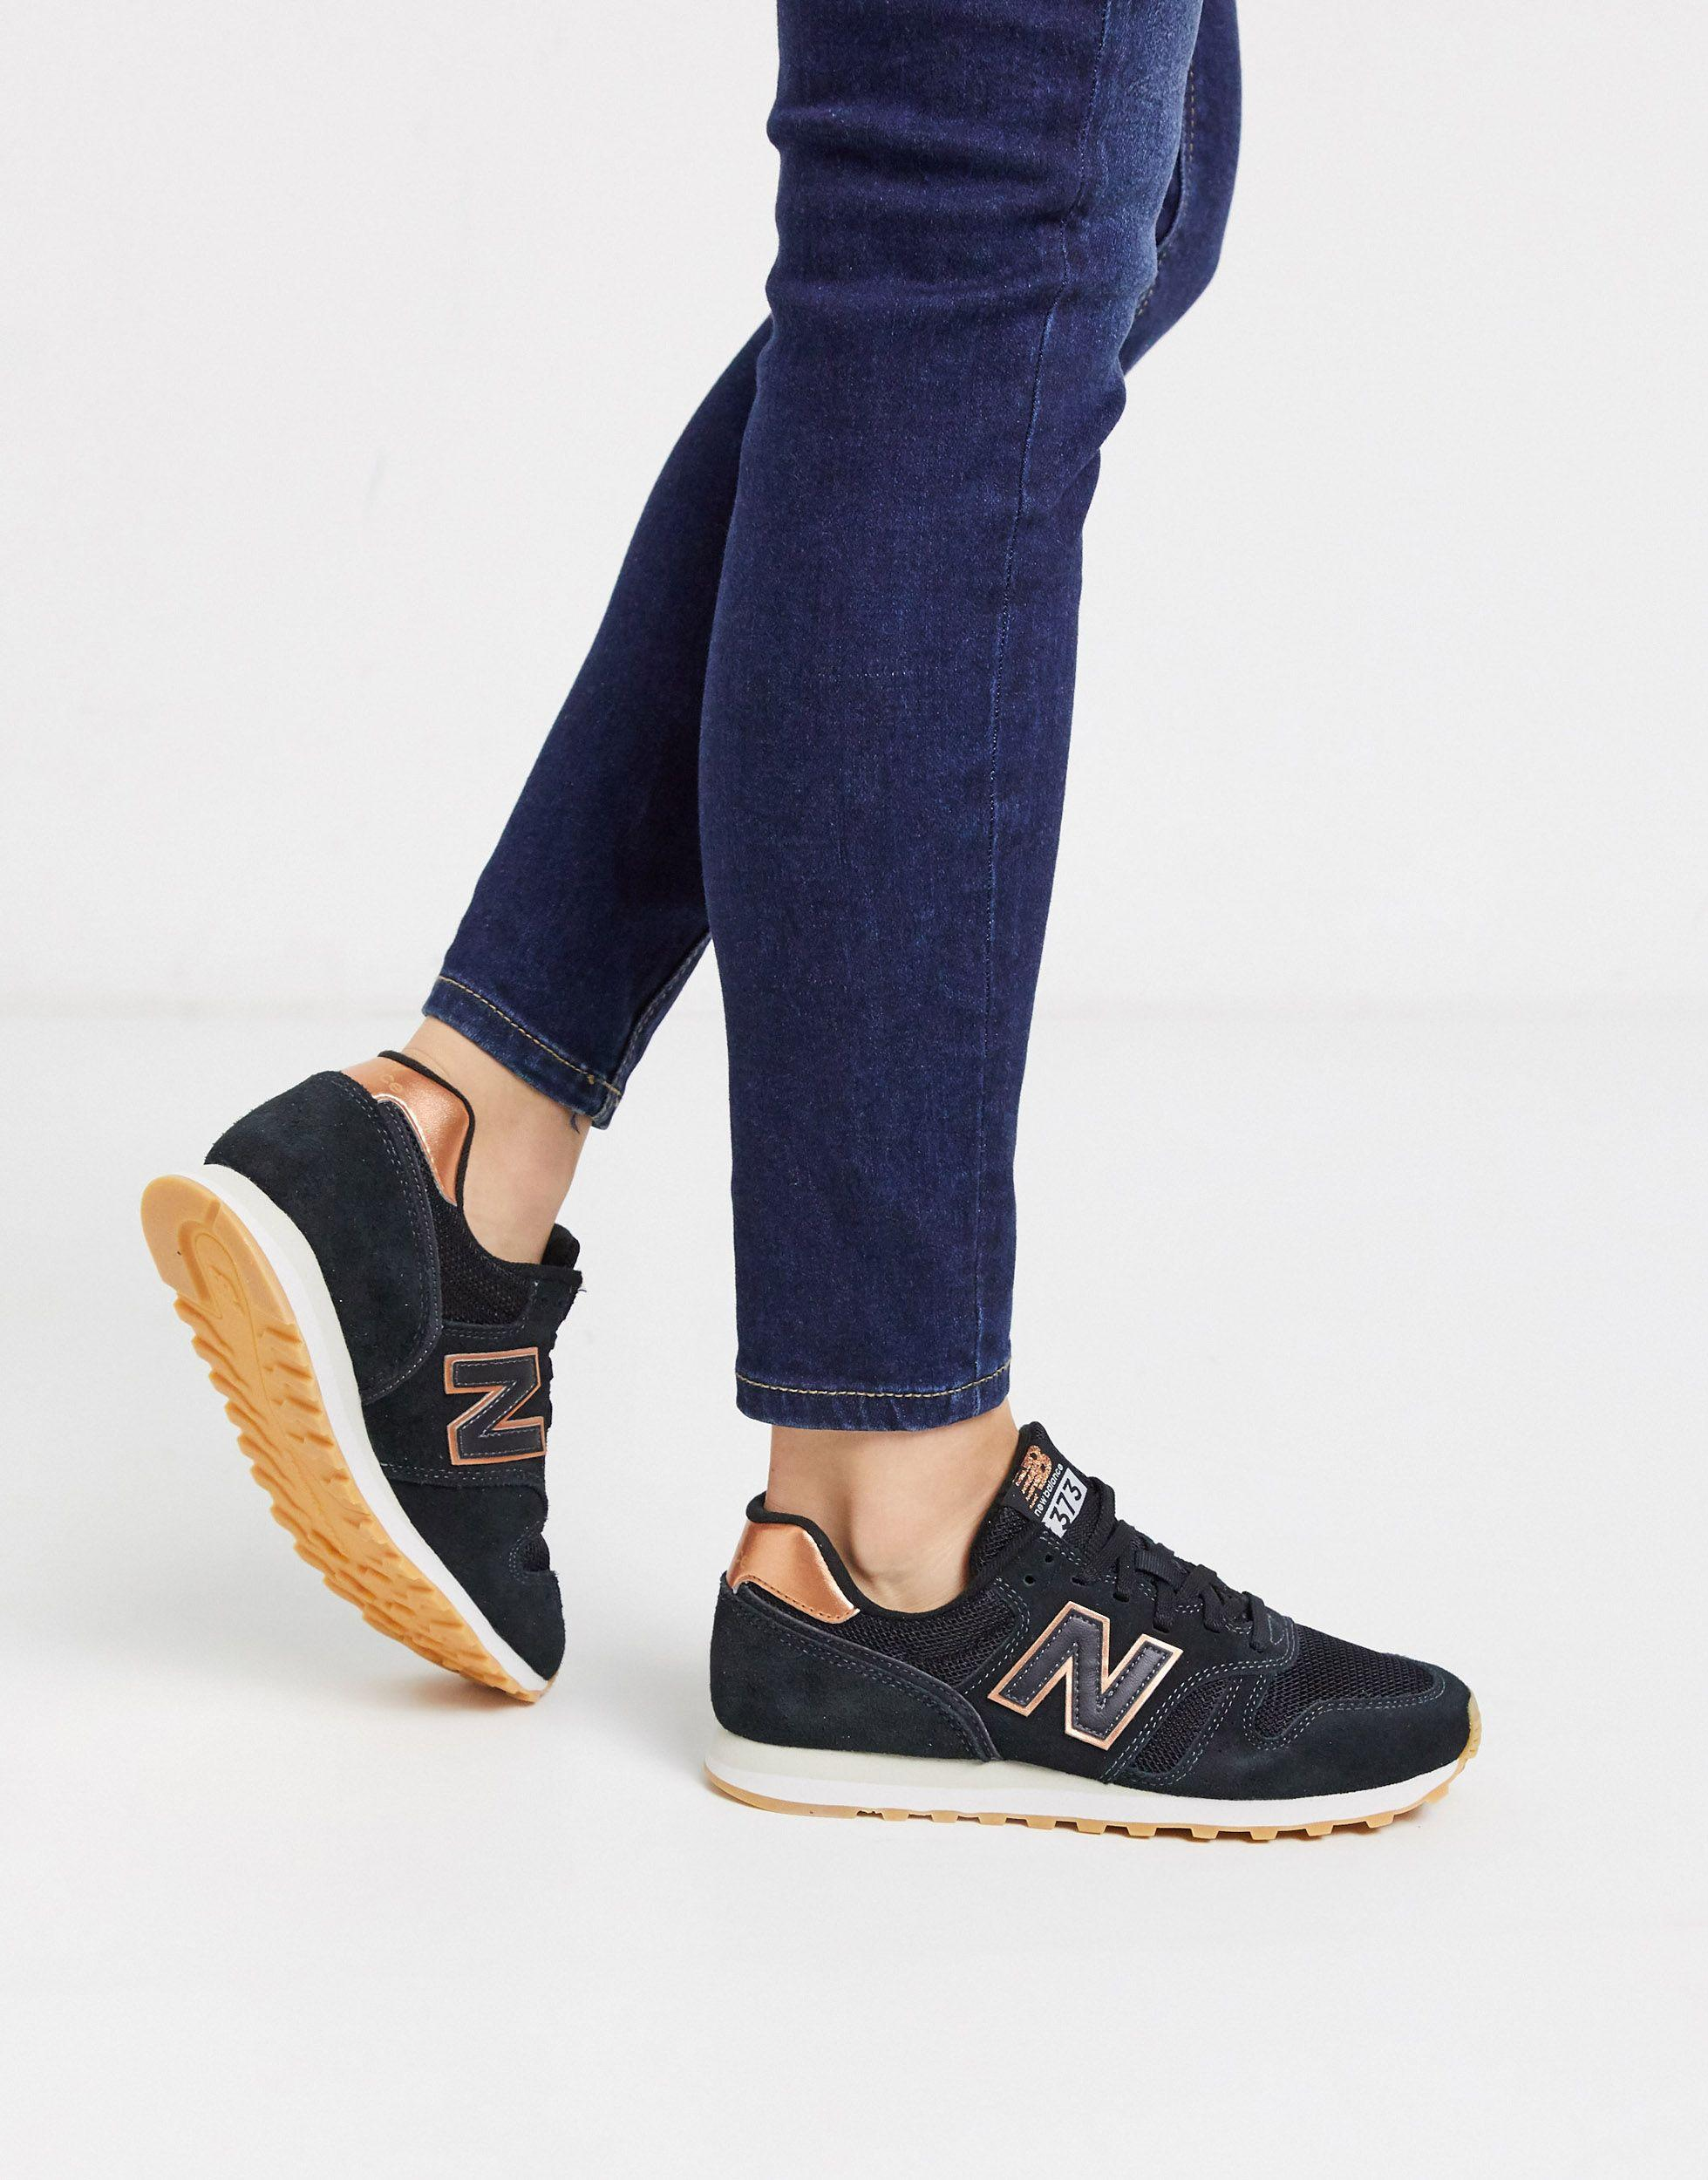 373 Womens Black / Rose Gold Trainers